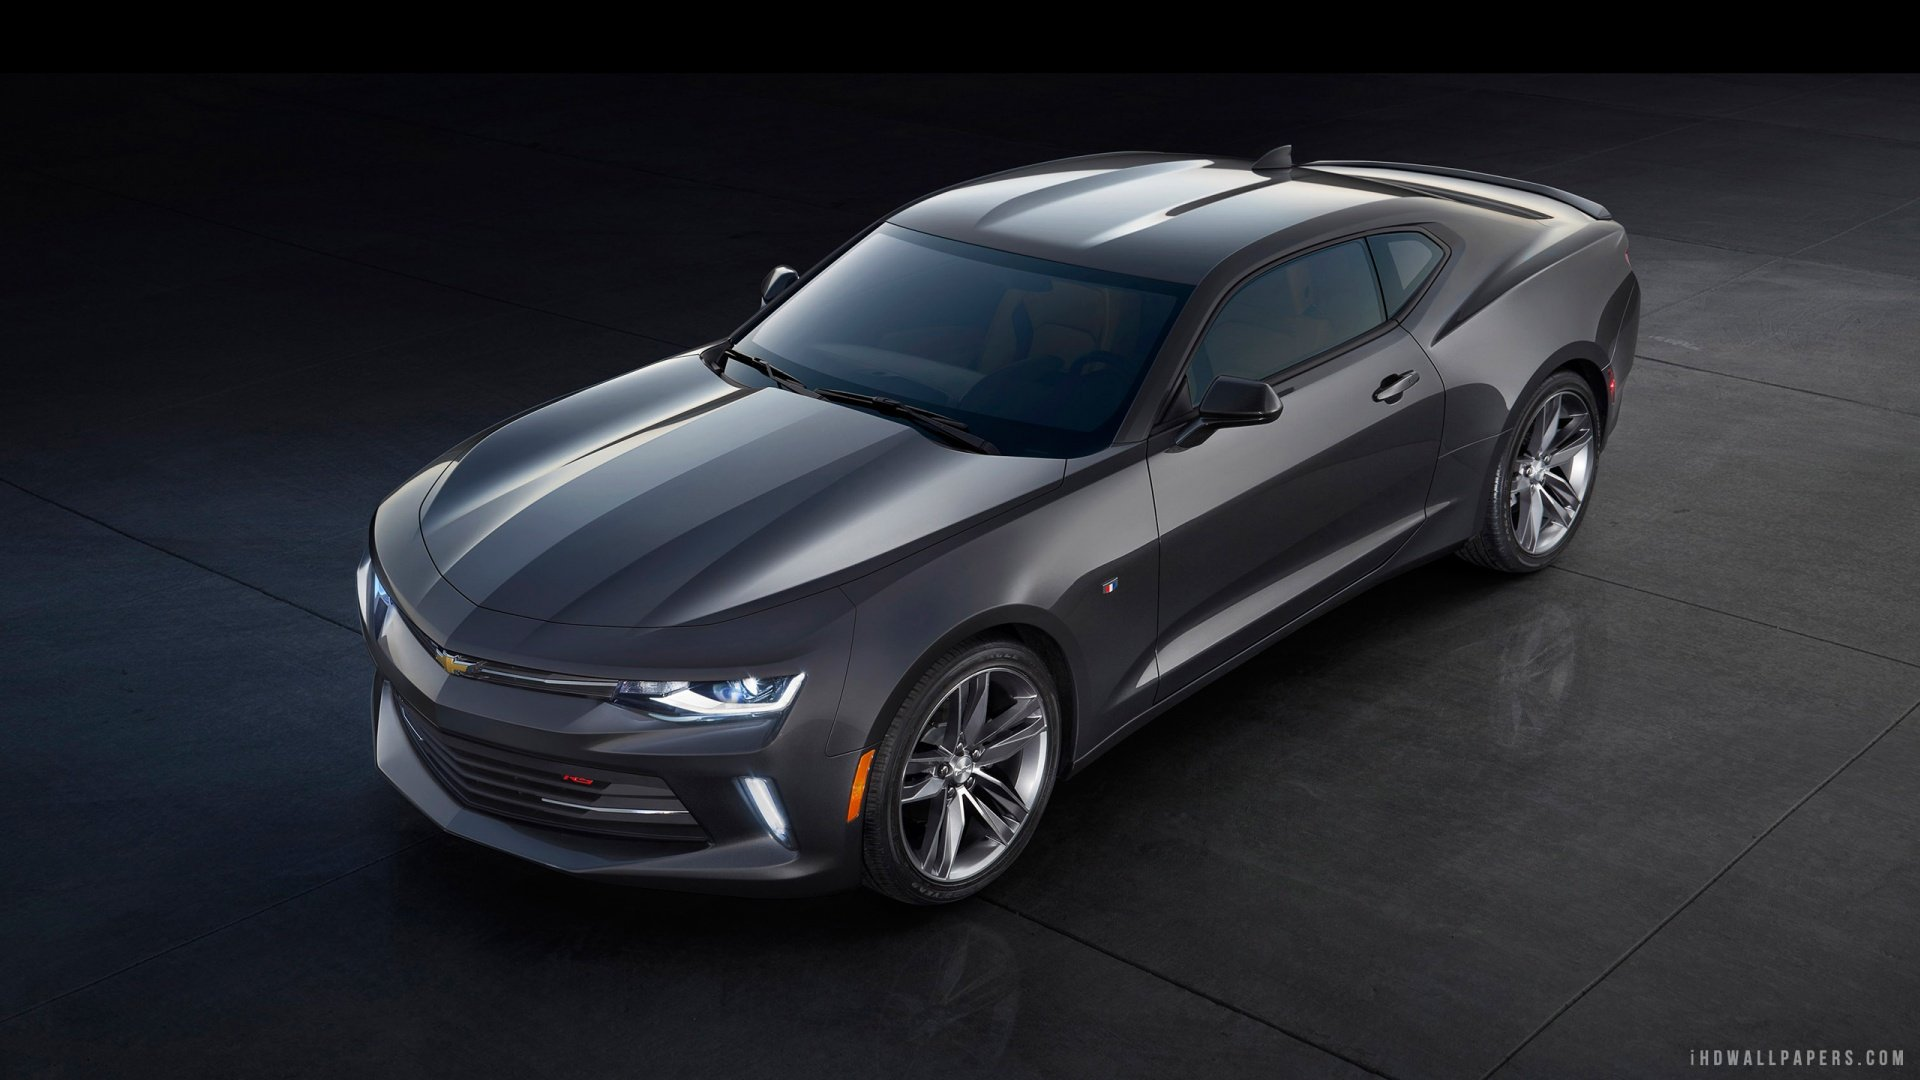 Chevrolet Camaro 2016 HD Wallpaper   iHD Wallpapers 1920x1080